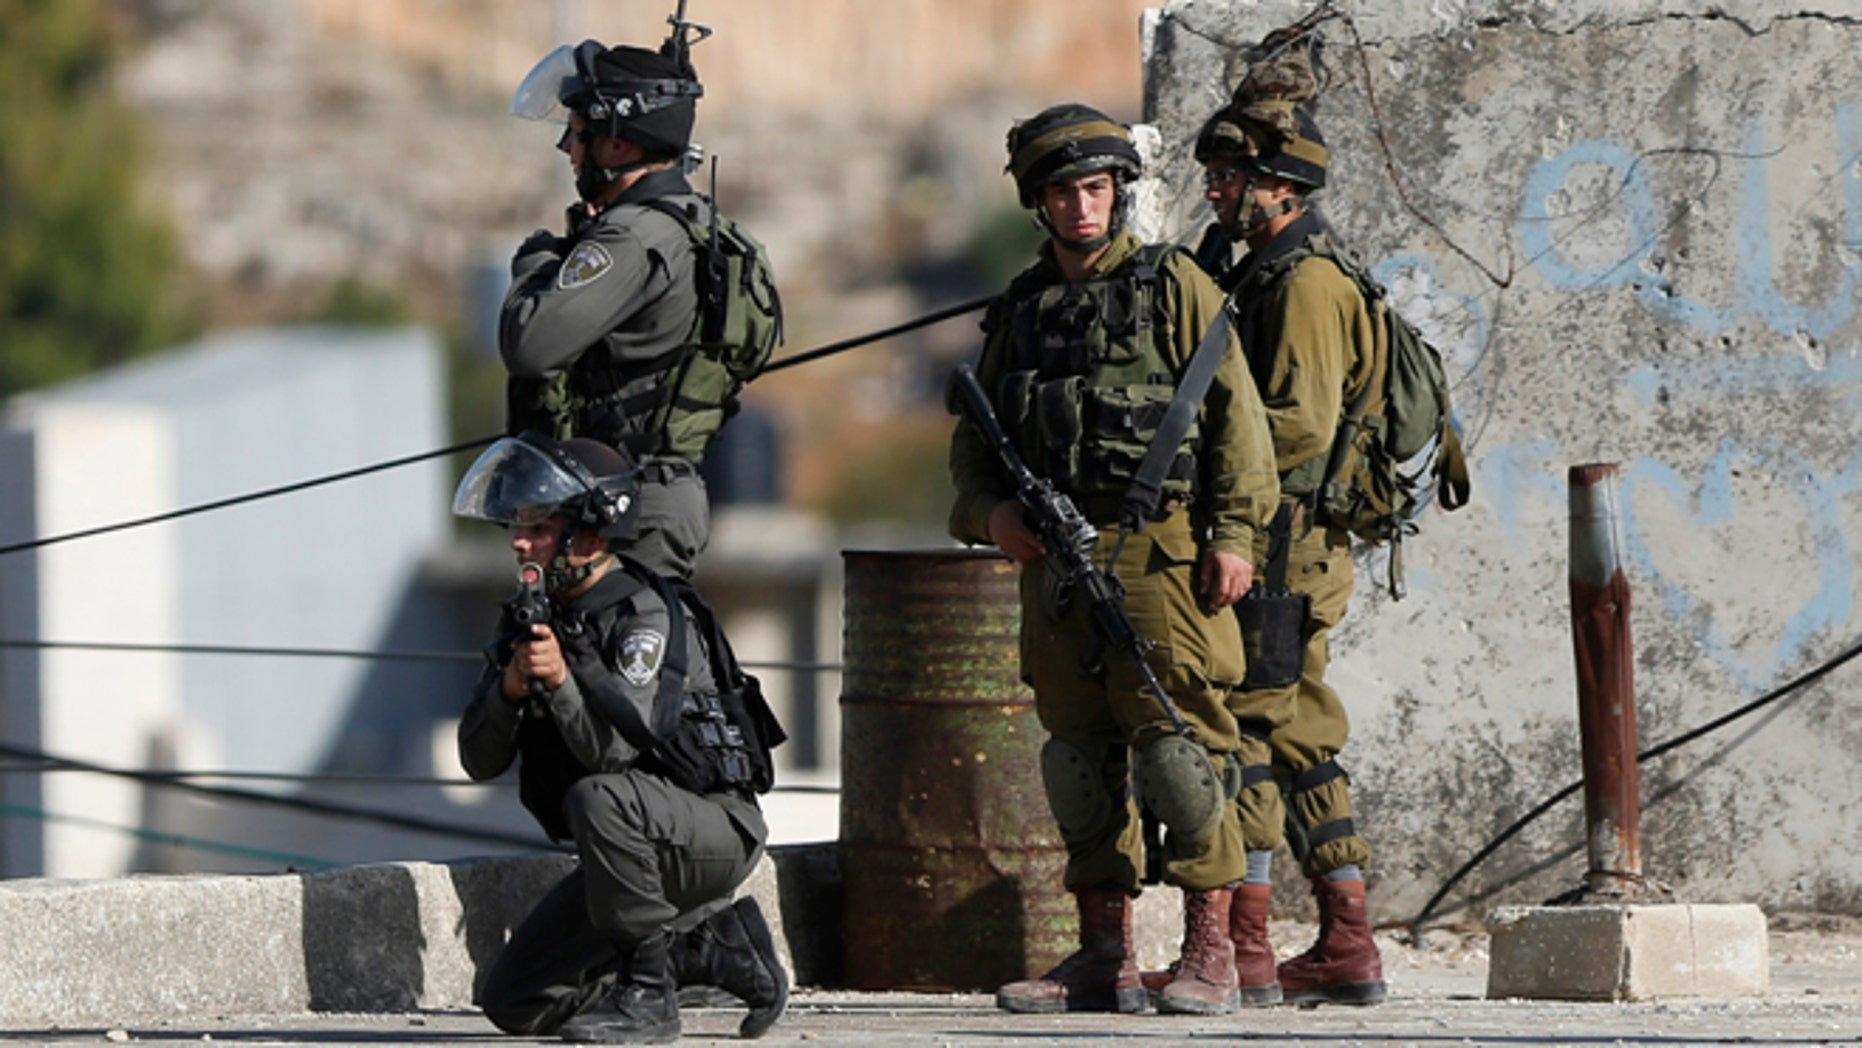 Nov 1, 2015: Israeli security troops take positions at the scene of a stabbing attempt, in the Beit Einun junction east of the West Bank city of Hebron. The Israeli military said soldiers shot a Palestinian who had tried to stab them on Sunday in the West Bank city of Hebron, in the latest violence of a bloody six-week spell. The military said the shooting took place during a violent riot and that no Israelis were harmed.